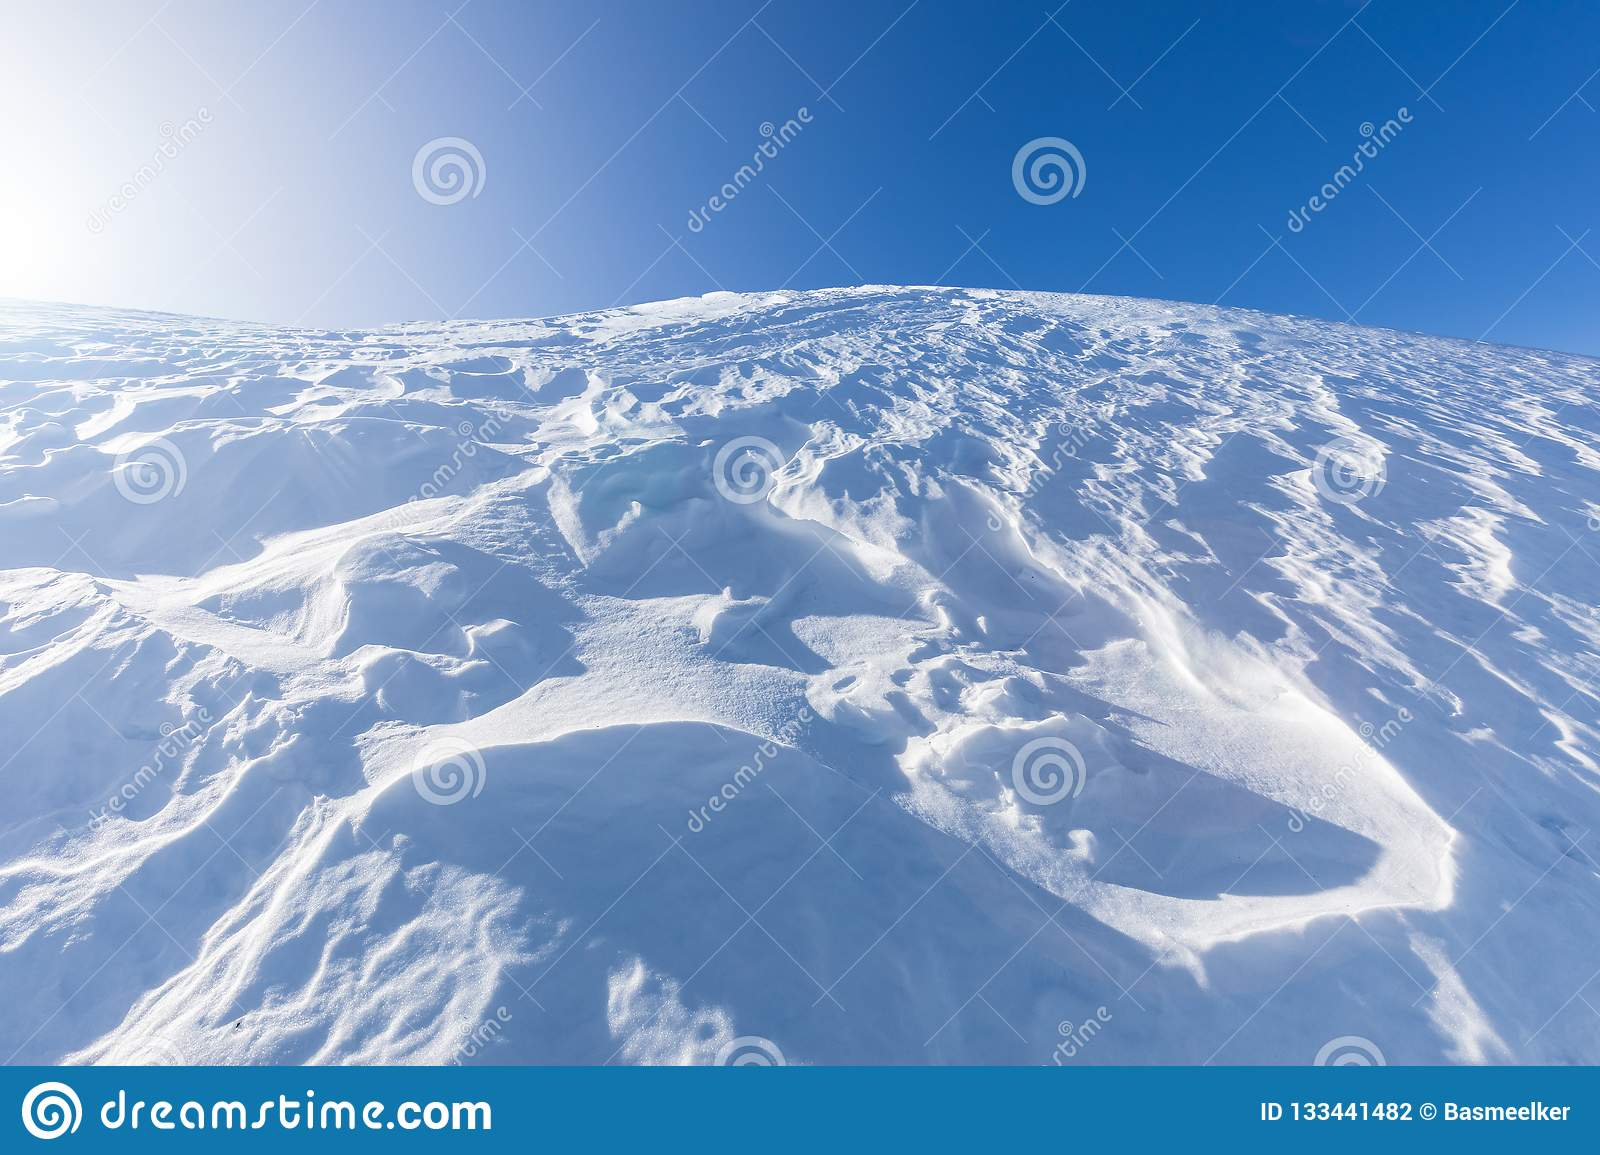 Hilltop covered in snow